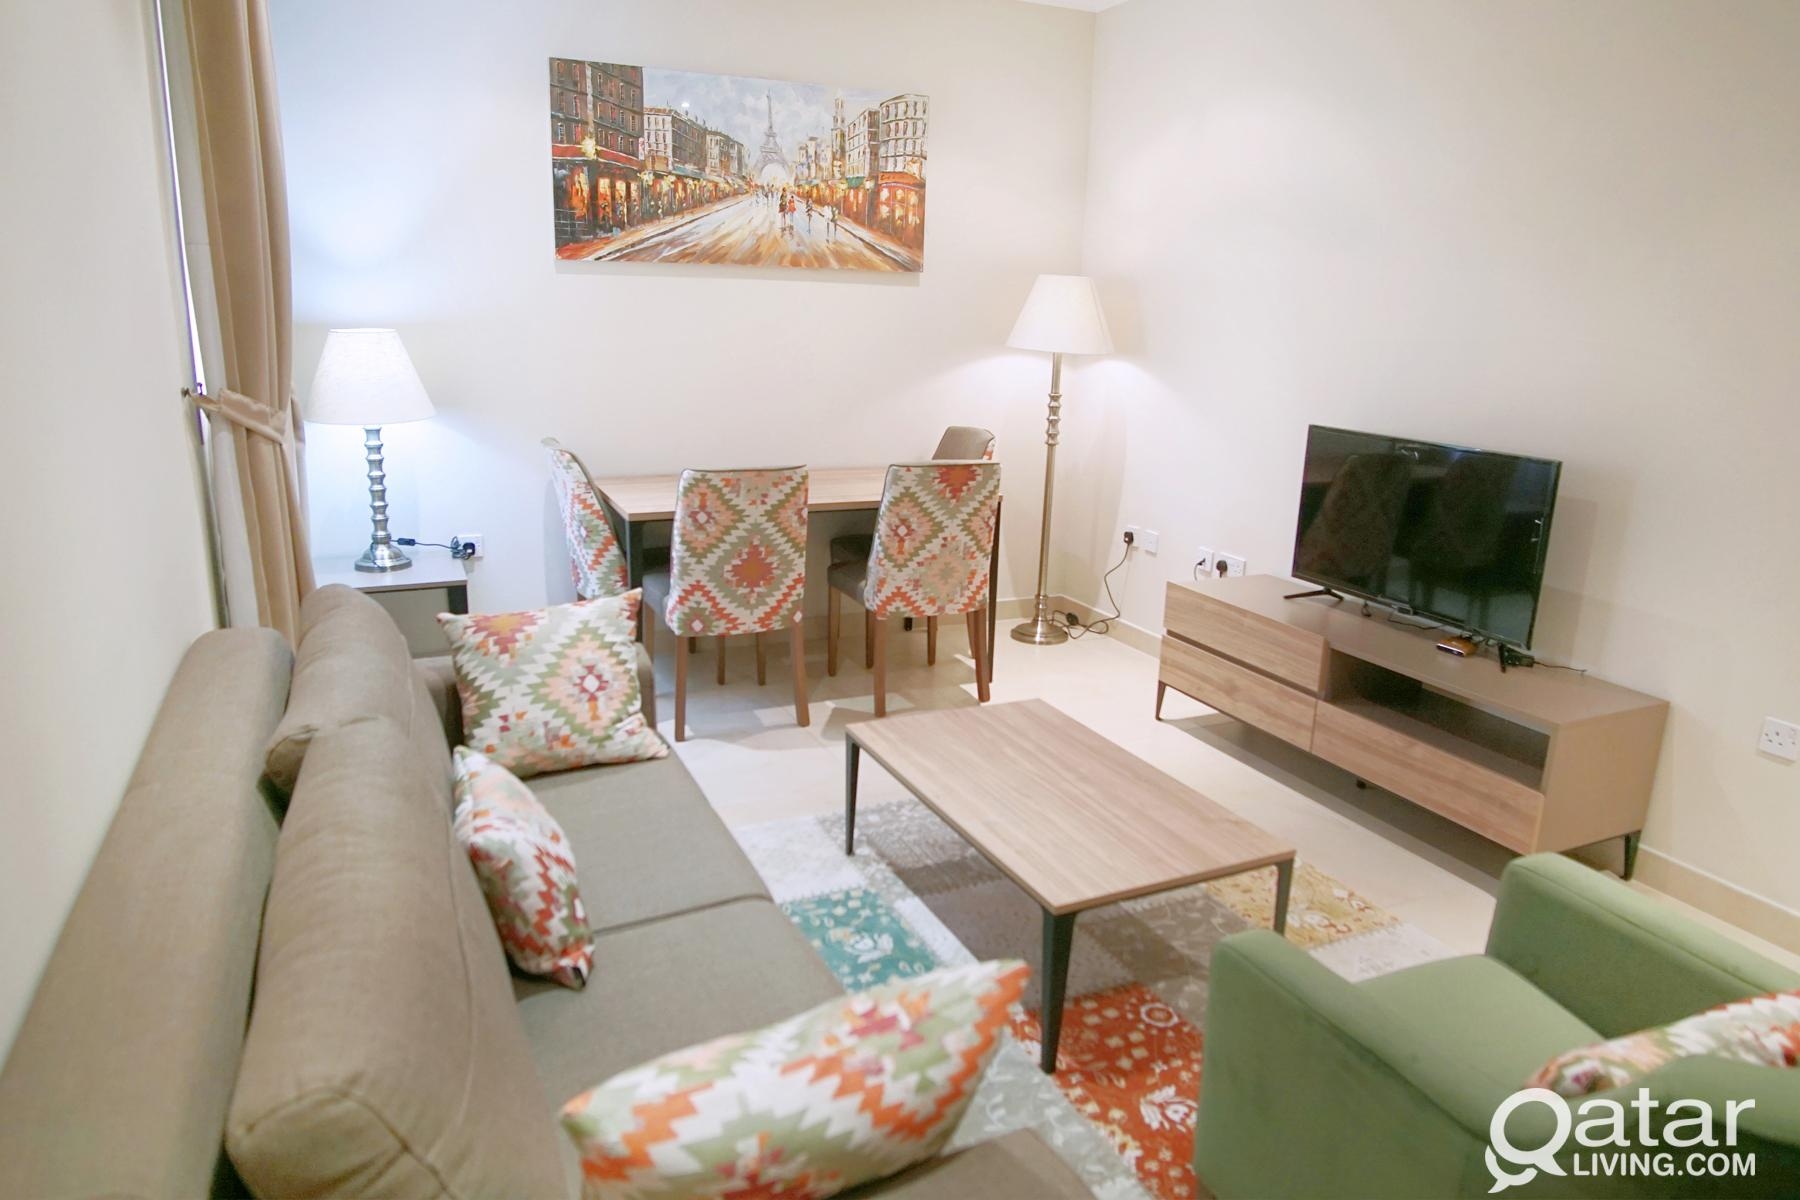 Stunning 1BHK (FF) in Doha - all utilities include